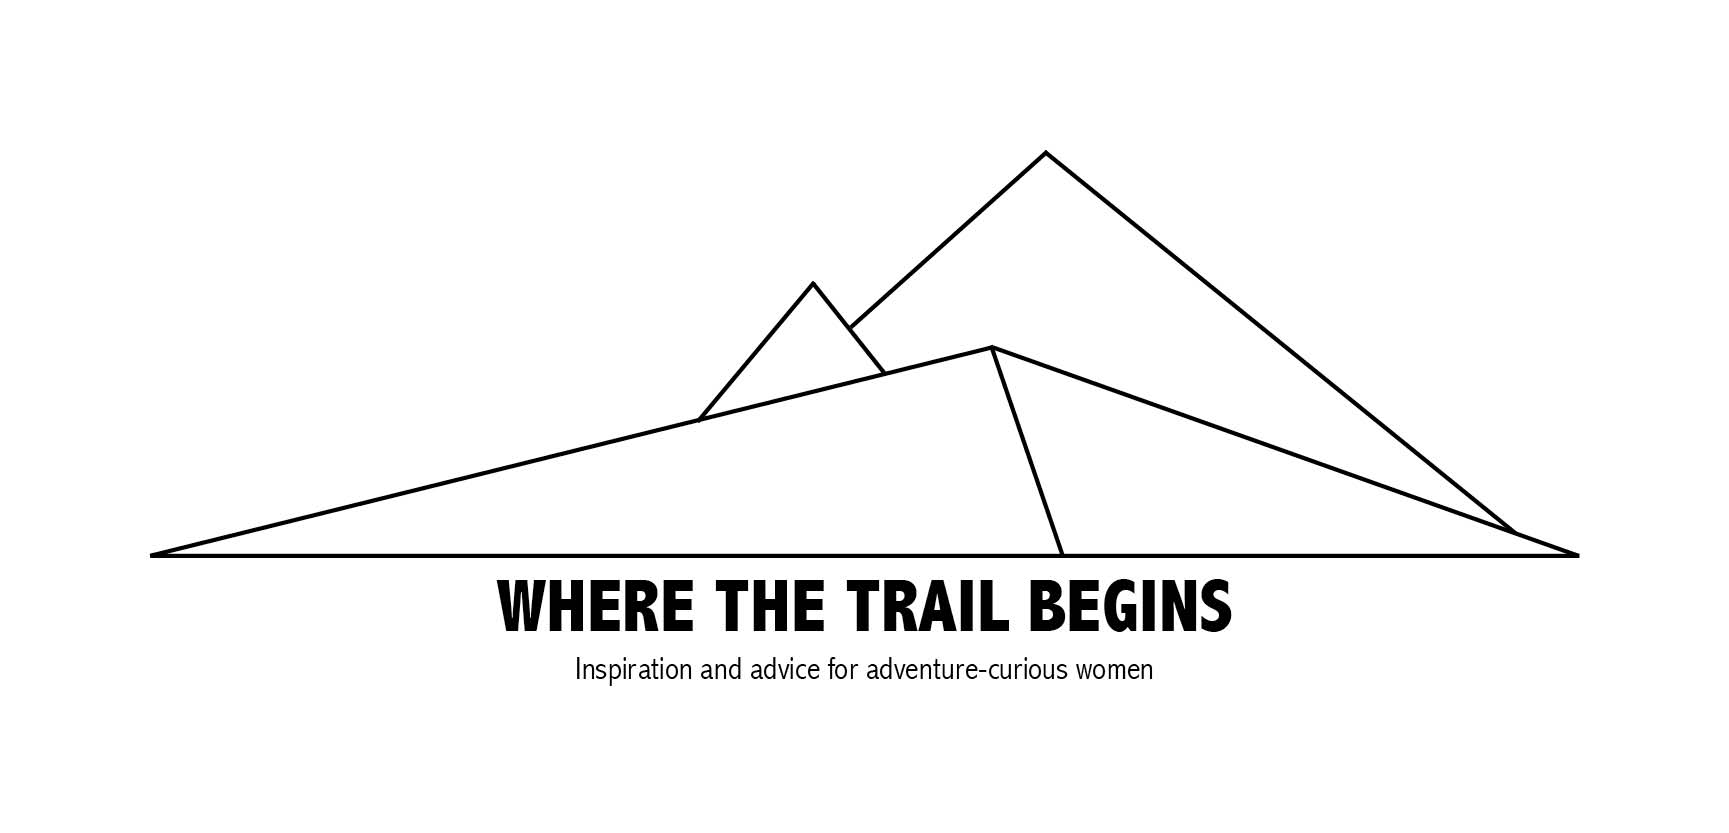 WHERE THE TRAIL BEGINS